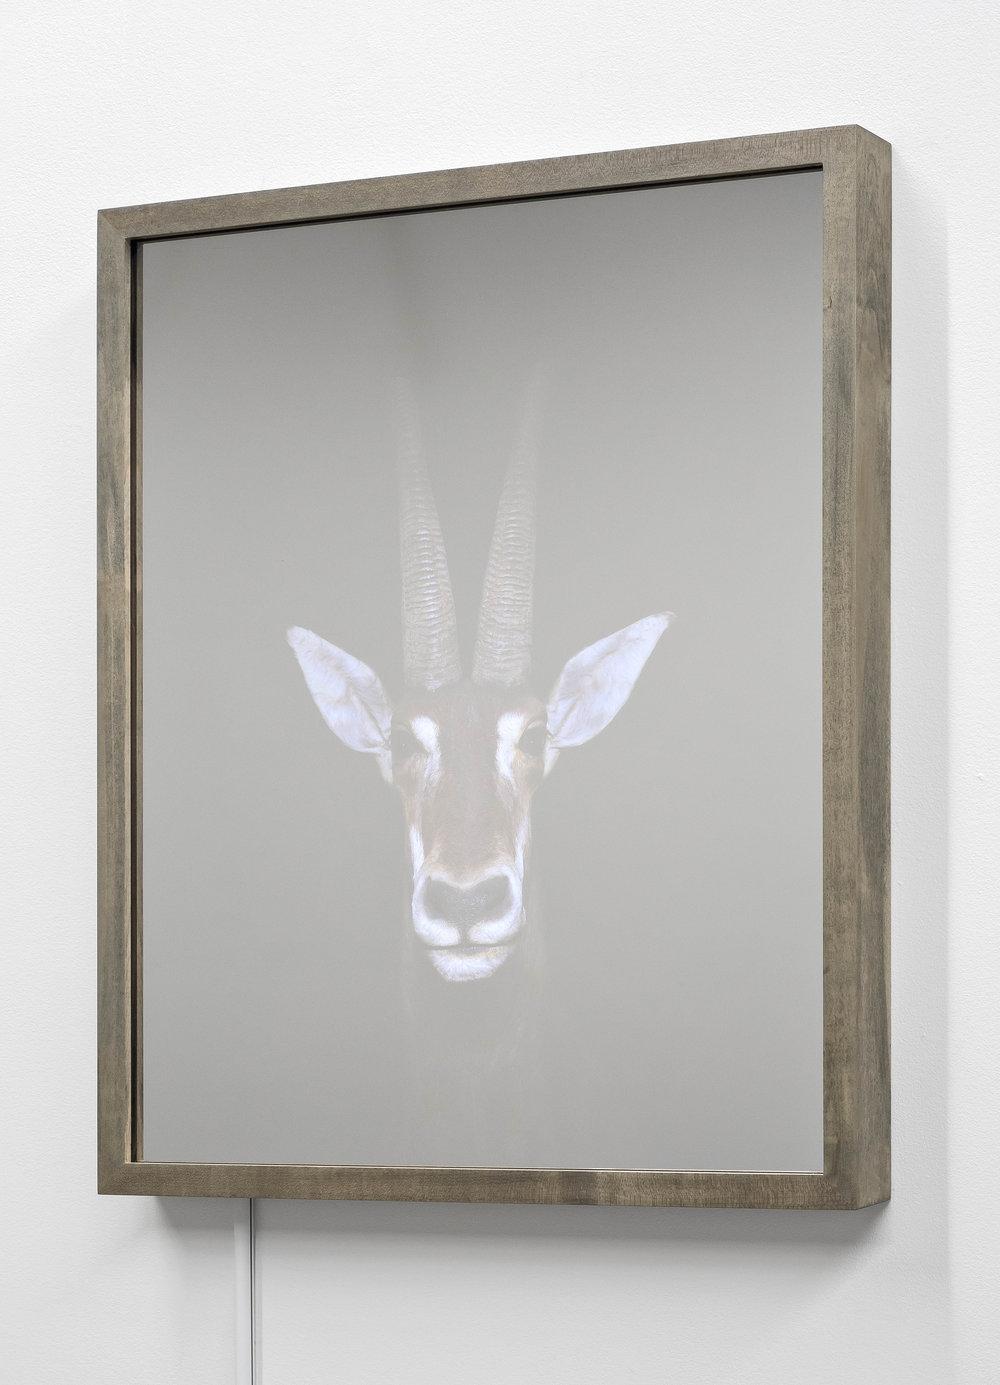 CHRISTINA SEELY  Sable Antelope,  Hippotragus niger - Vulnerable Kinetic Mirrored Lightbox  Available size:  30 x 24 in | Edition of 3 + 1AP 20 x 16 in | Edition of 3 + 1AP